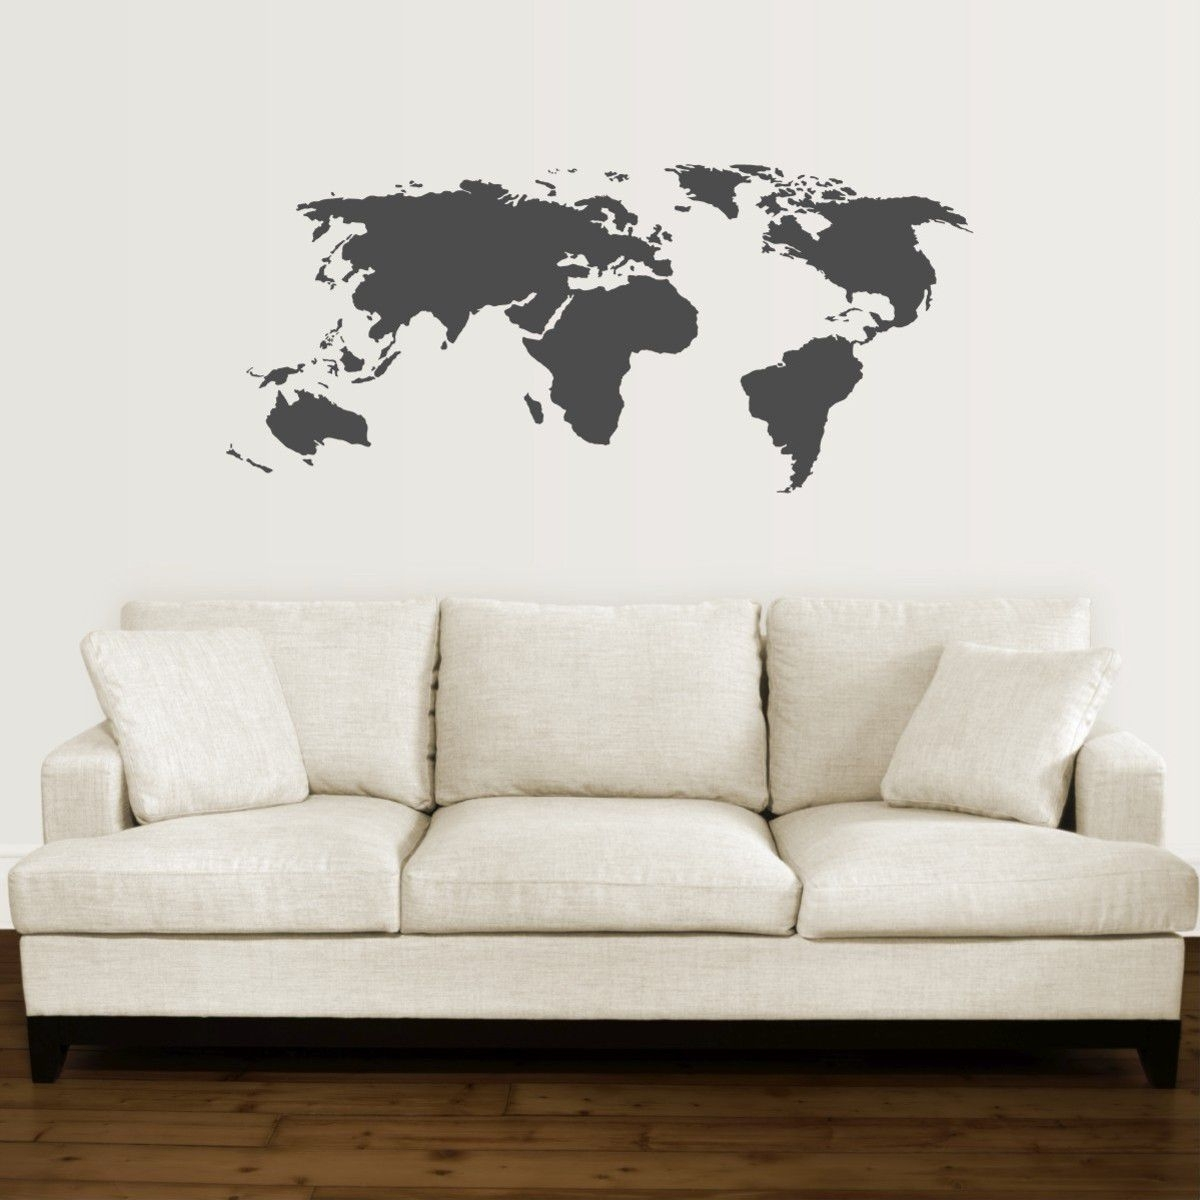 Buy Online In With Famous Vinyl Wall Art World Map (Gallery 10 of 20)